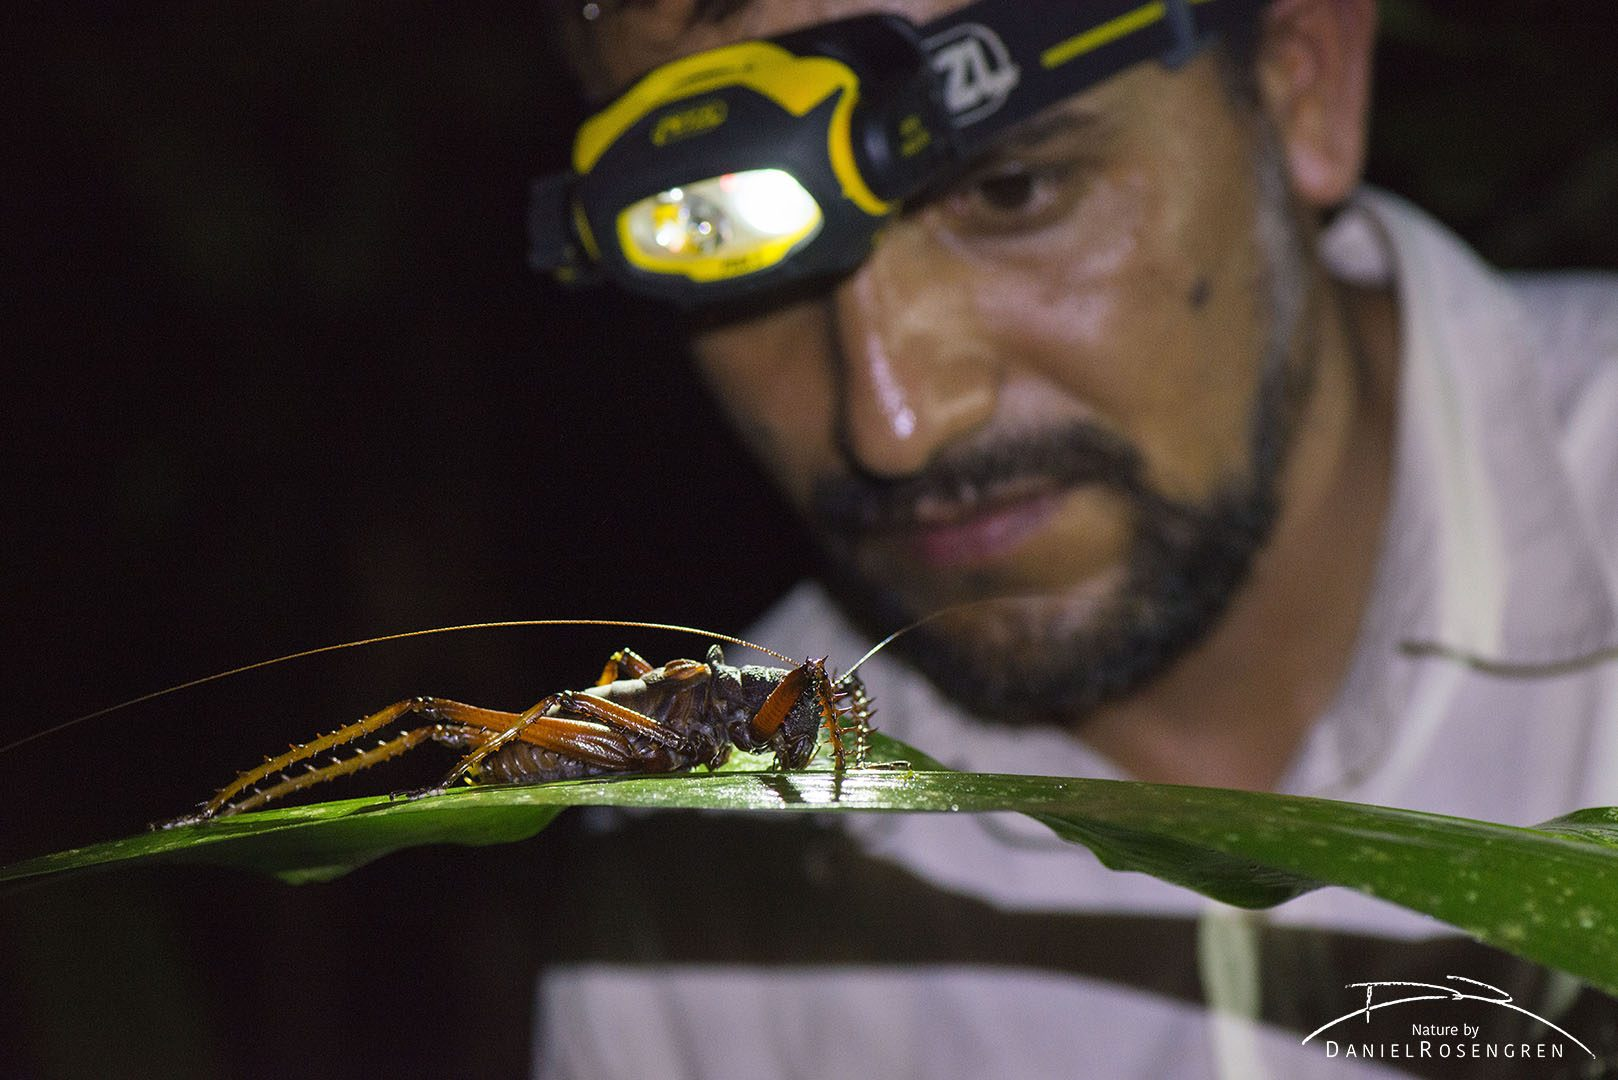 Claus Garcia and a giant Katydid in Yaguas. © Daniel Rosengren